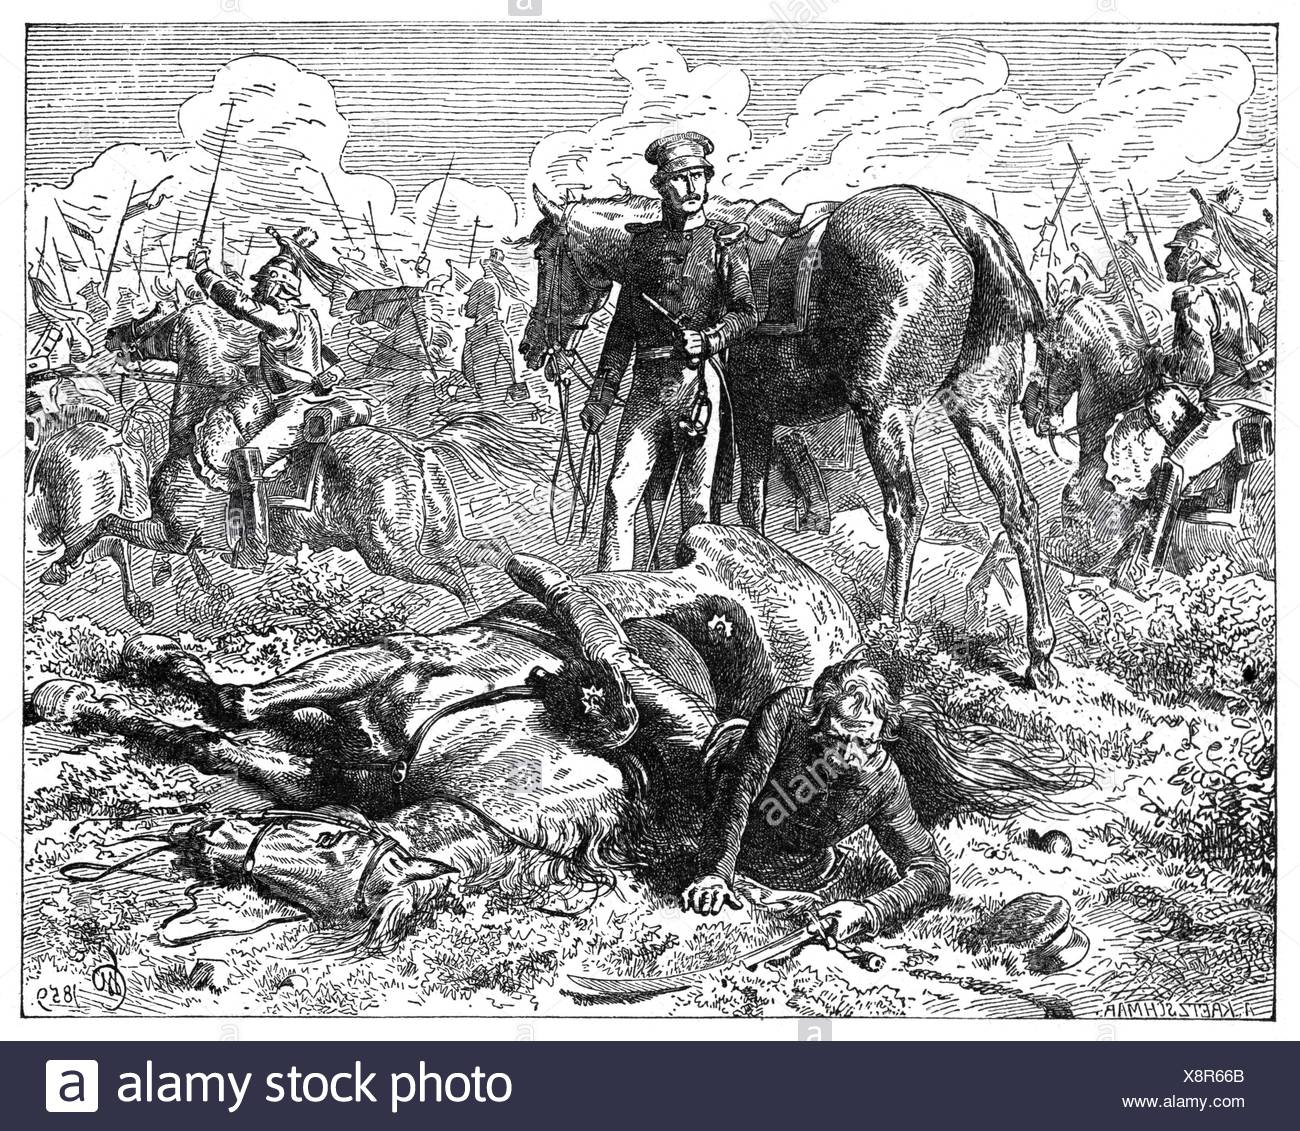 War of the Seventh Coalition 1815, Battle of Ligny, 16.6.1815, field marshal Gebhard Leberecht von Bluecher under his shot horse, is covered by Major August von Nostitz, wood engraving, late 19th century, Additional-Rights-Clearences-NA - Stock Image